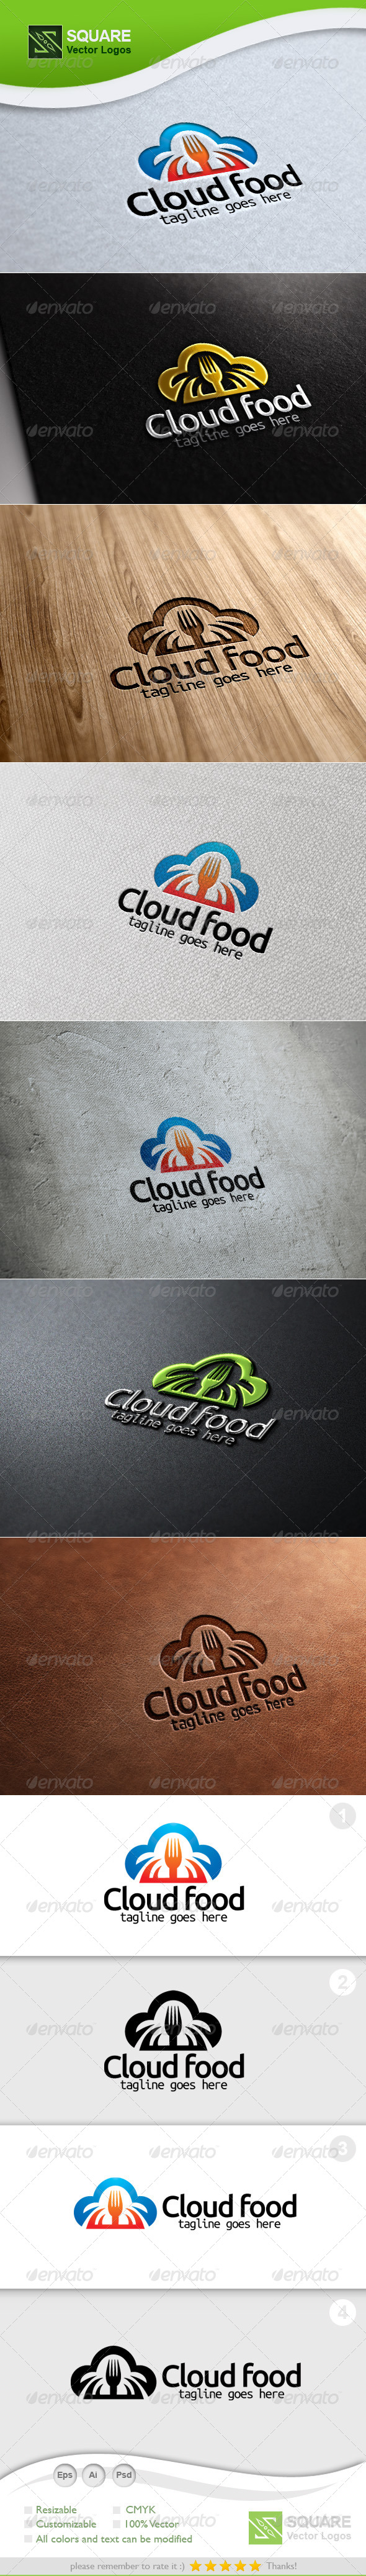 GraphicRiver Cloud Fork Vector Logo Template 5394193